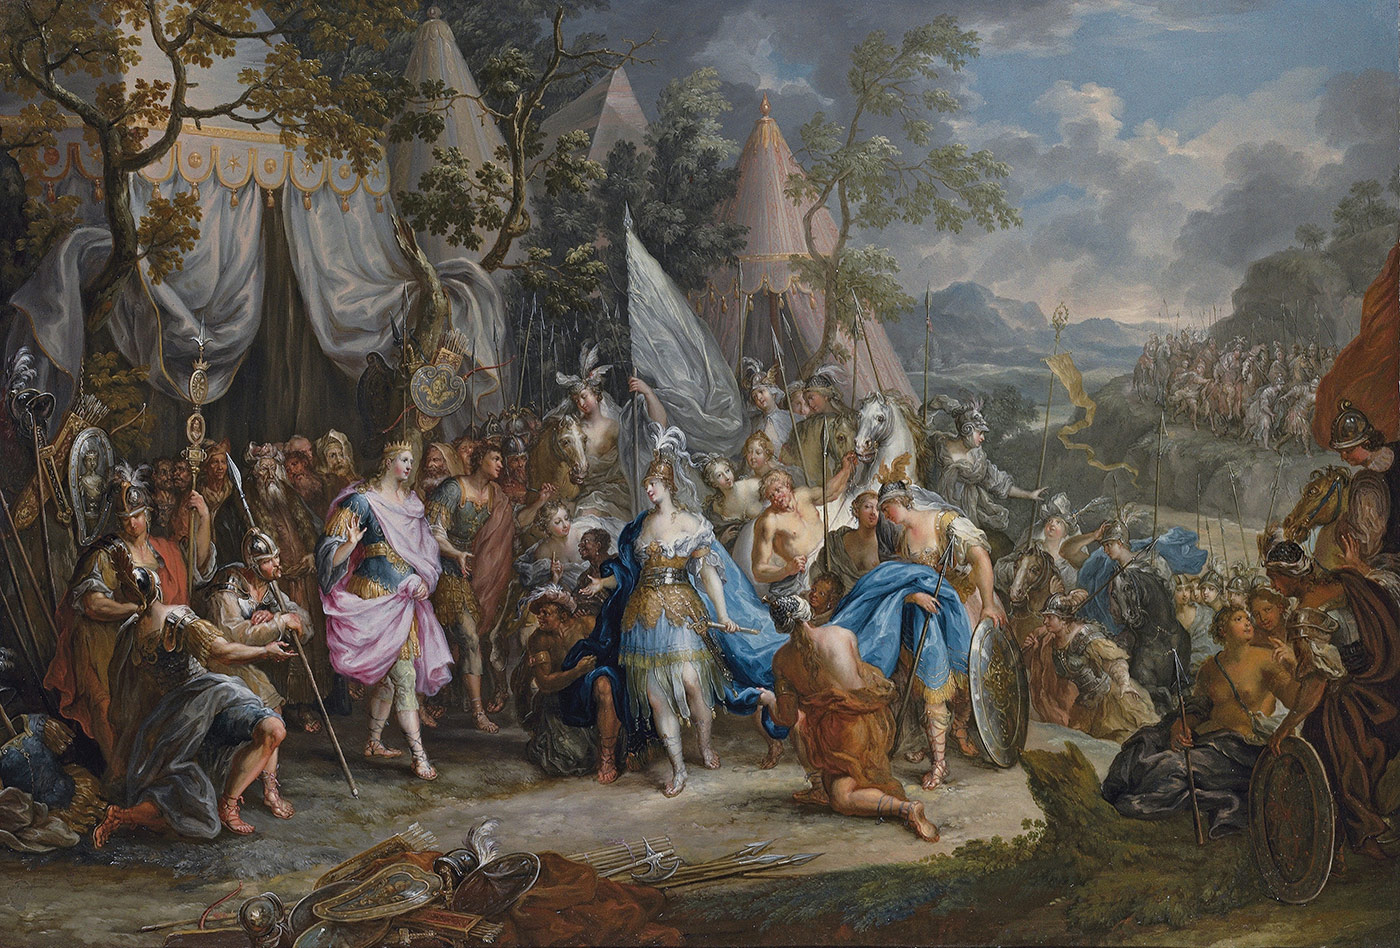 'The Amazon Queen, Thalestris, in the Camp of Alexander the Great', by Johann Georg Platzer, c.1750.